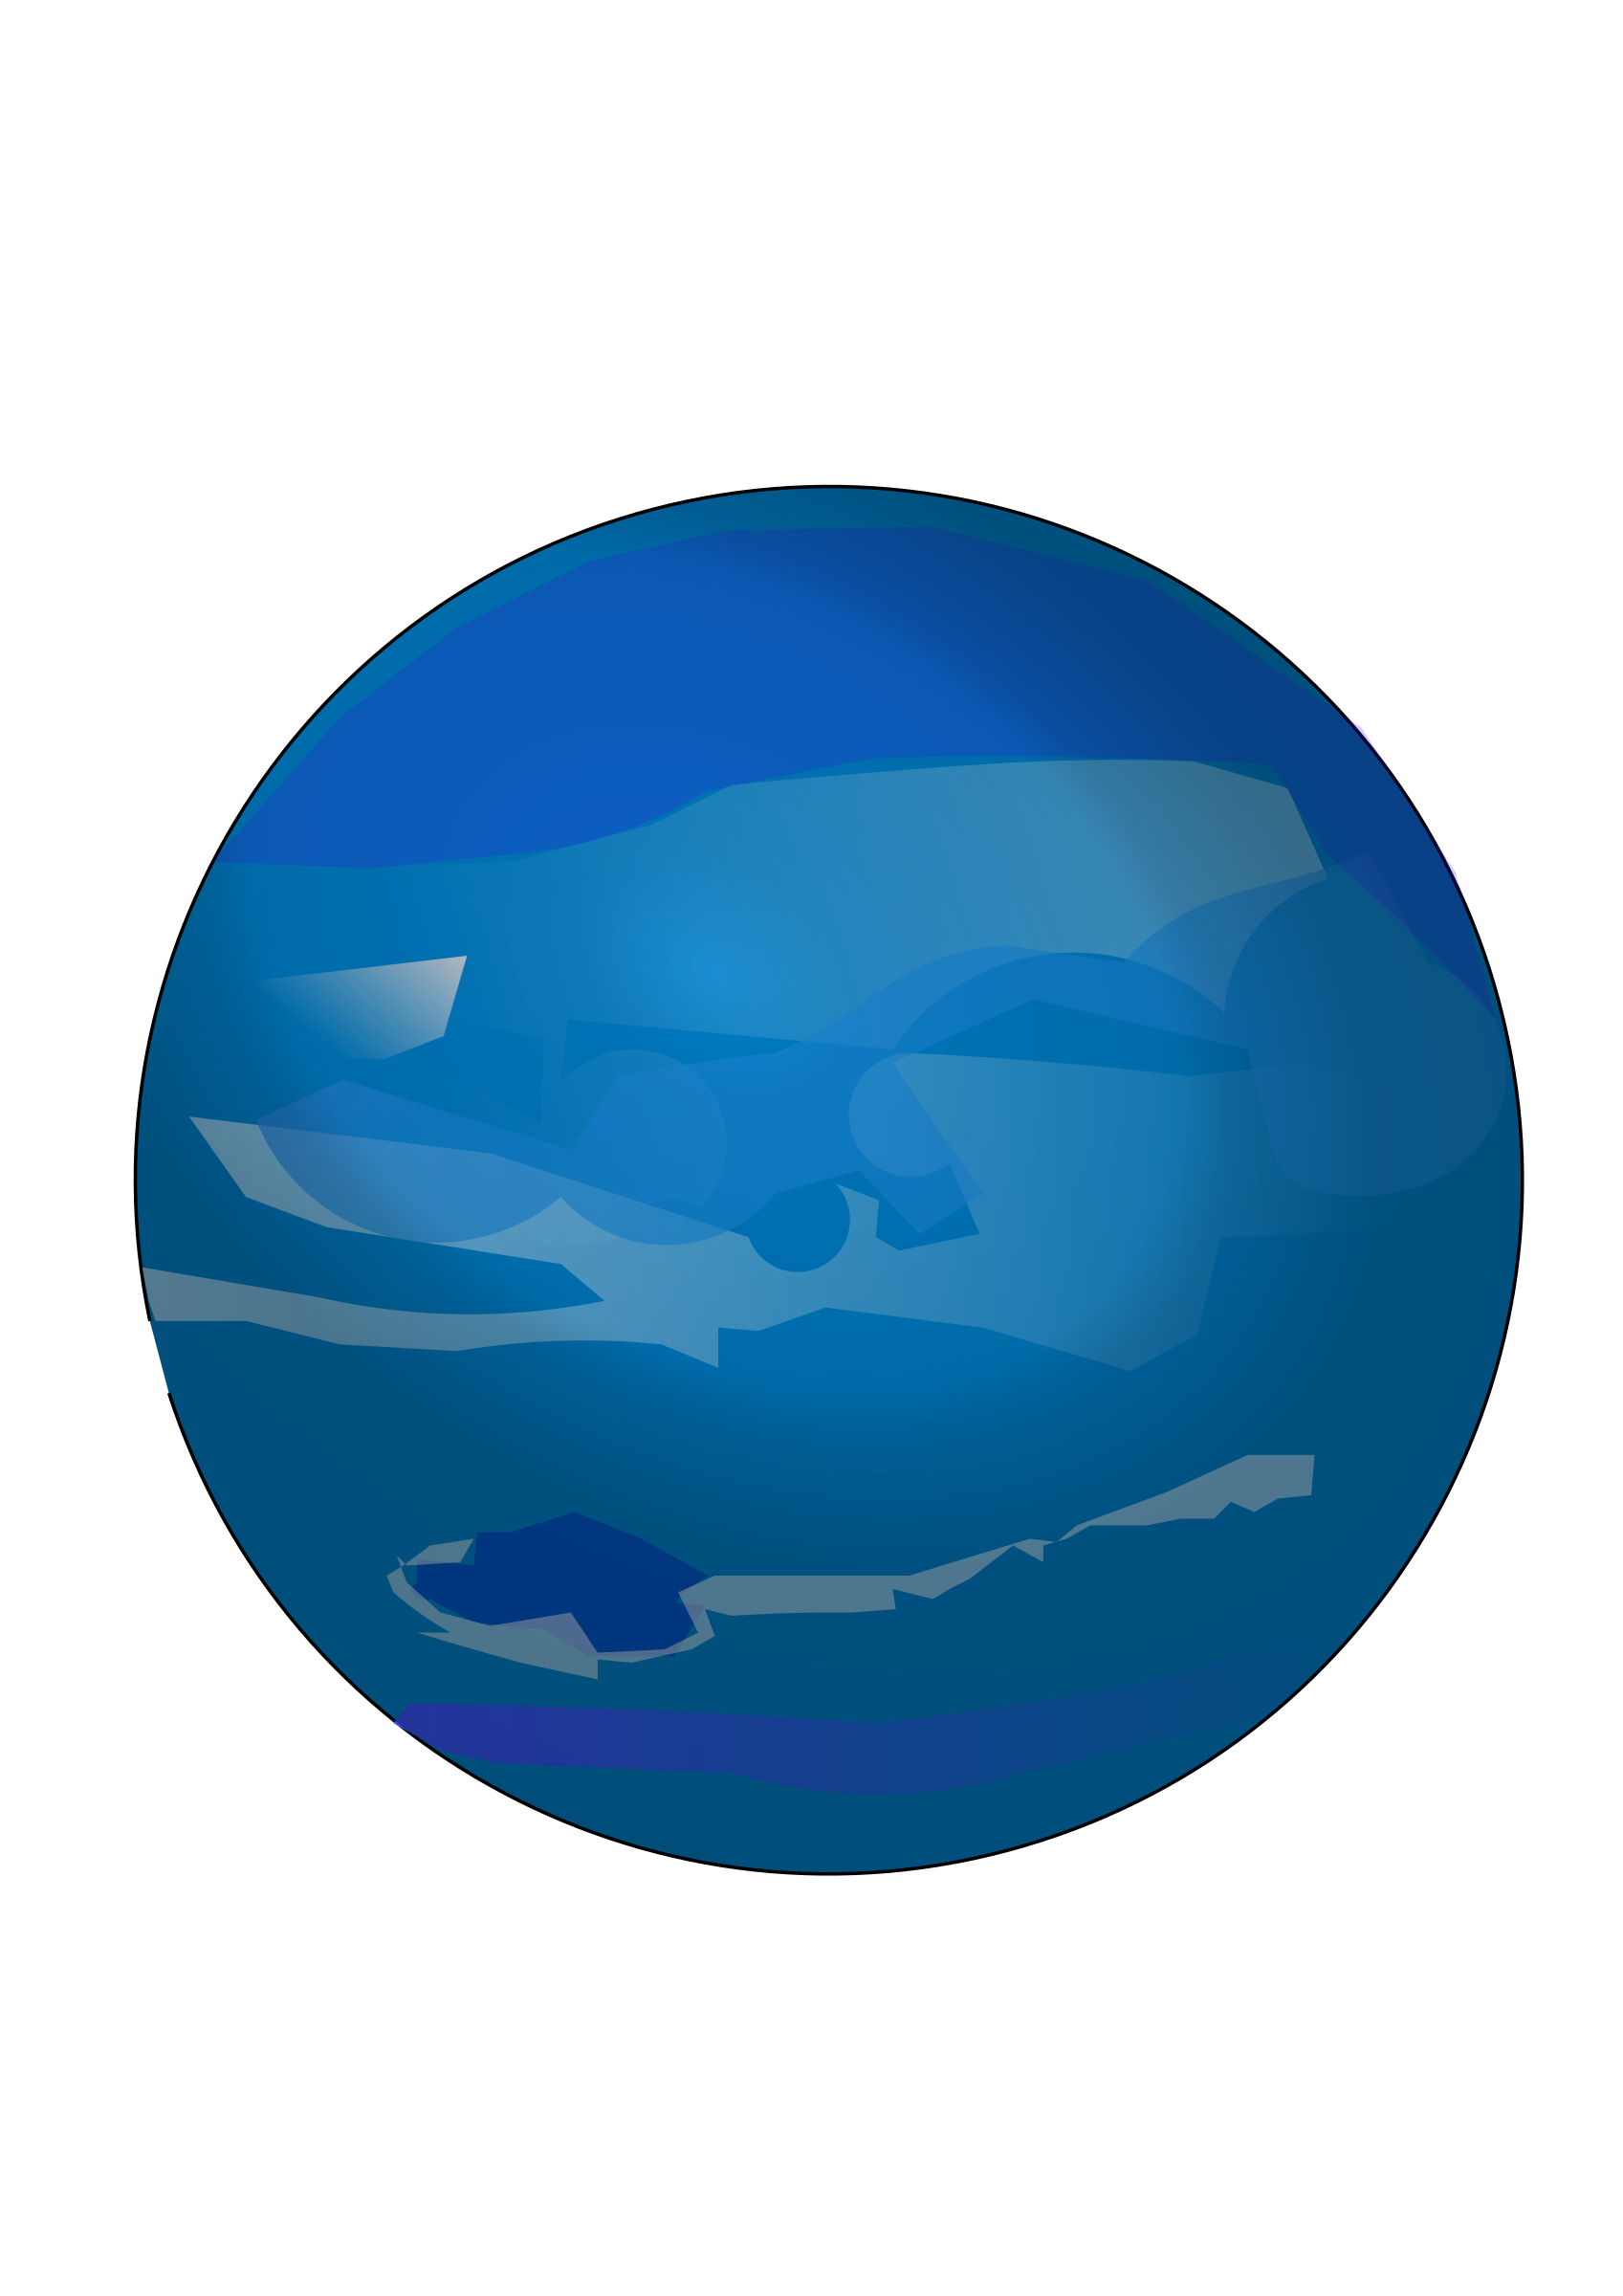 neptune planet png - photo #20